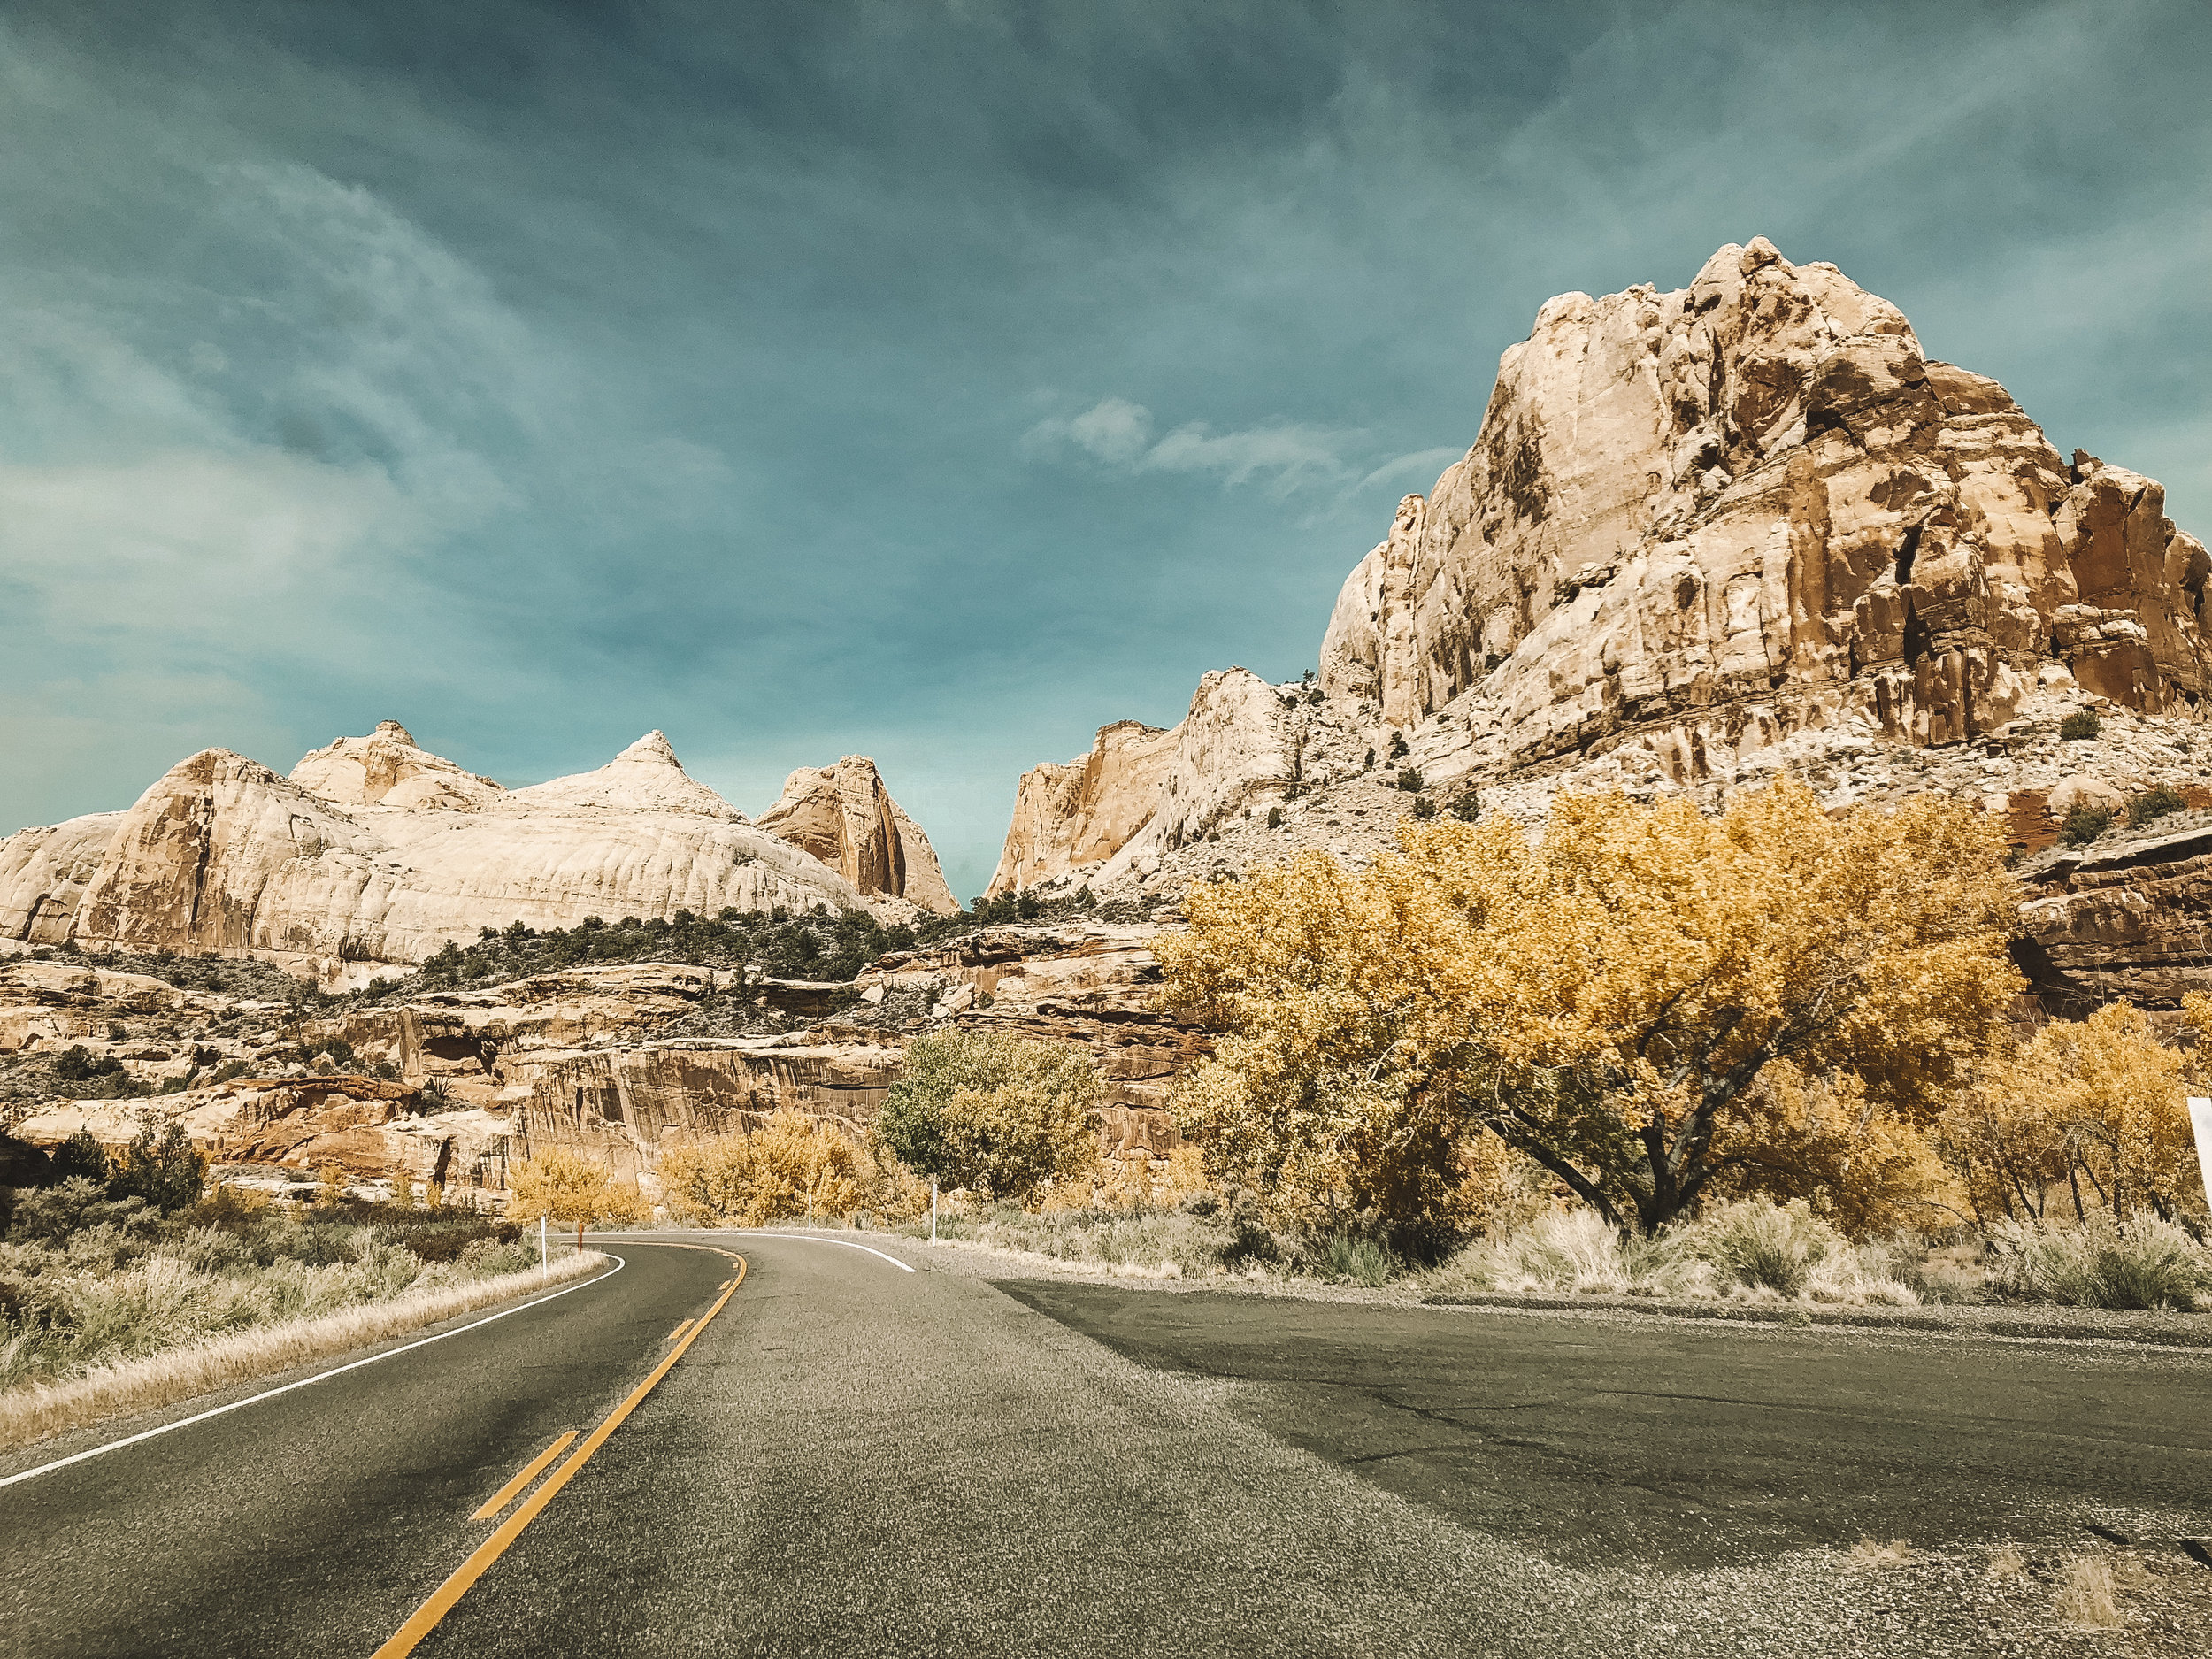 Driving through the Fruita area in Capitol Reef